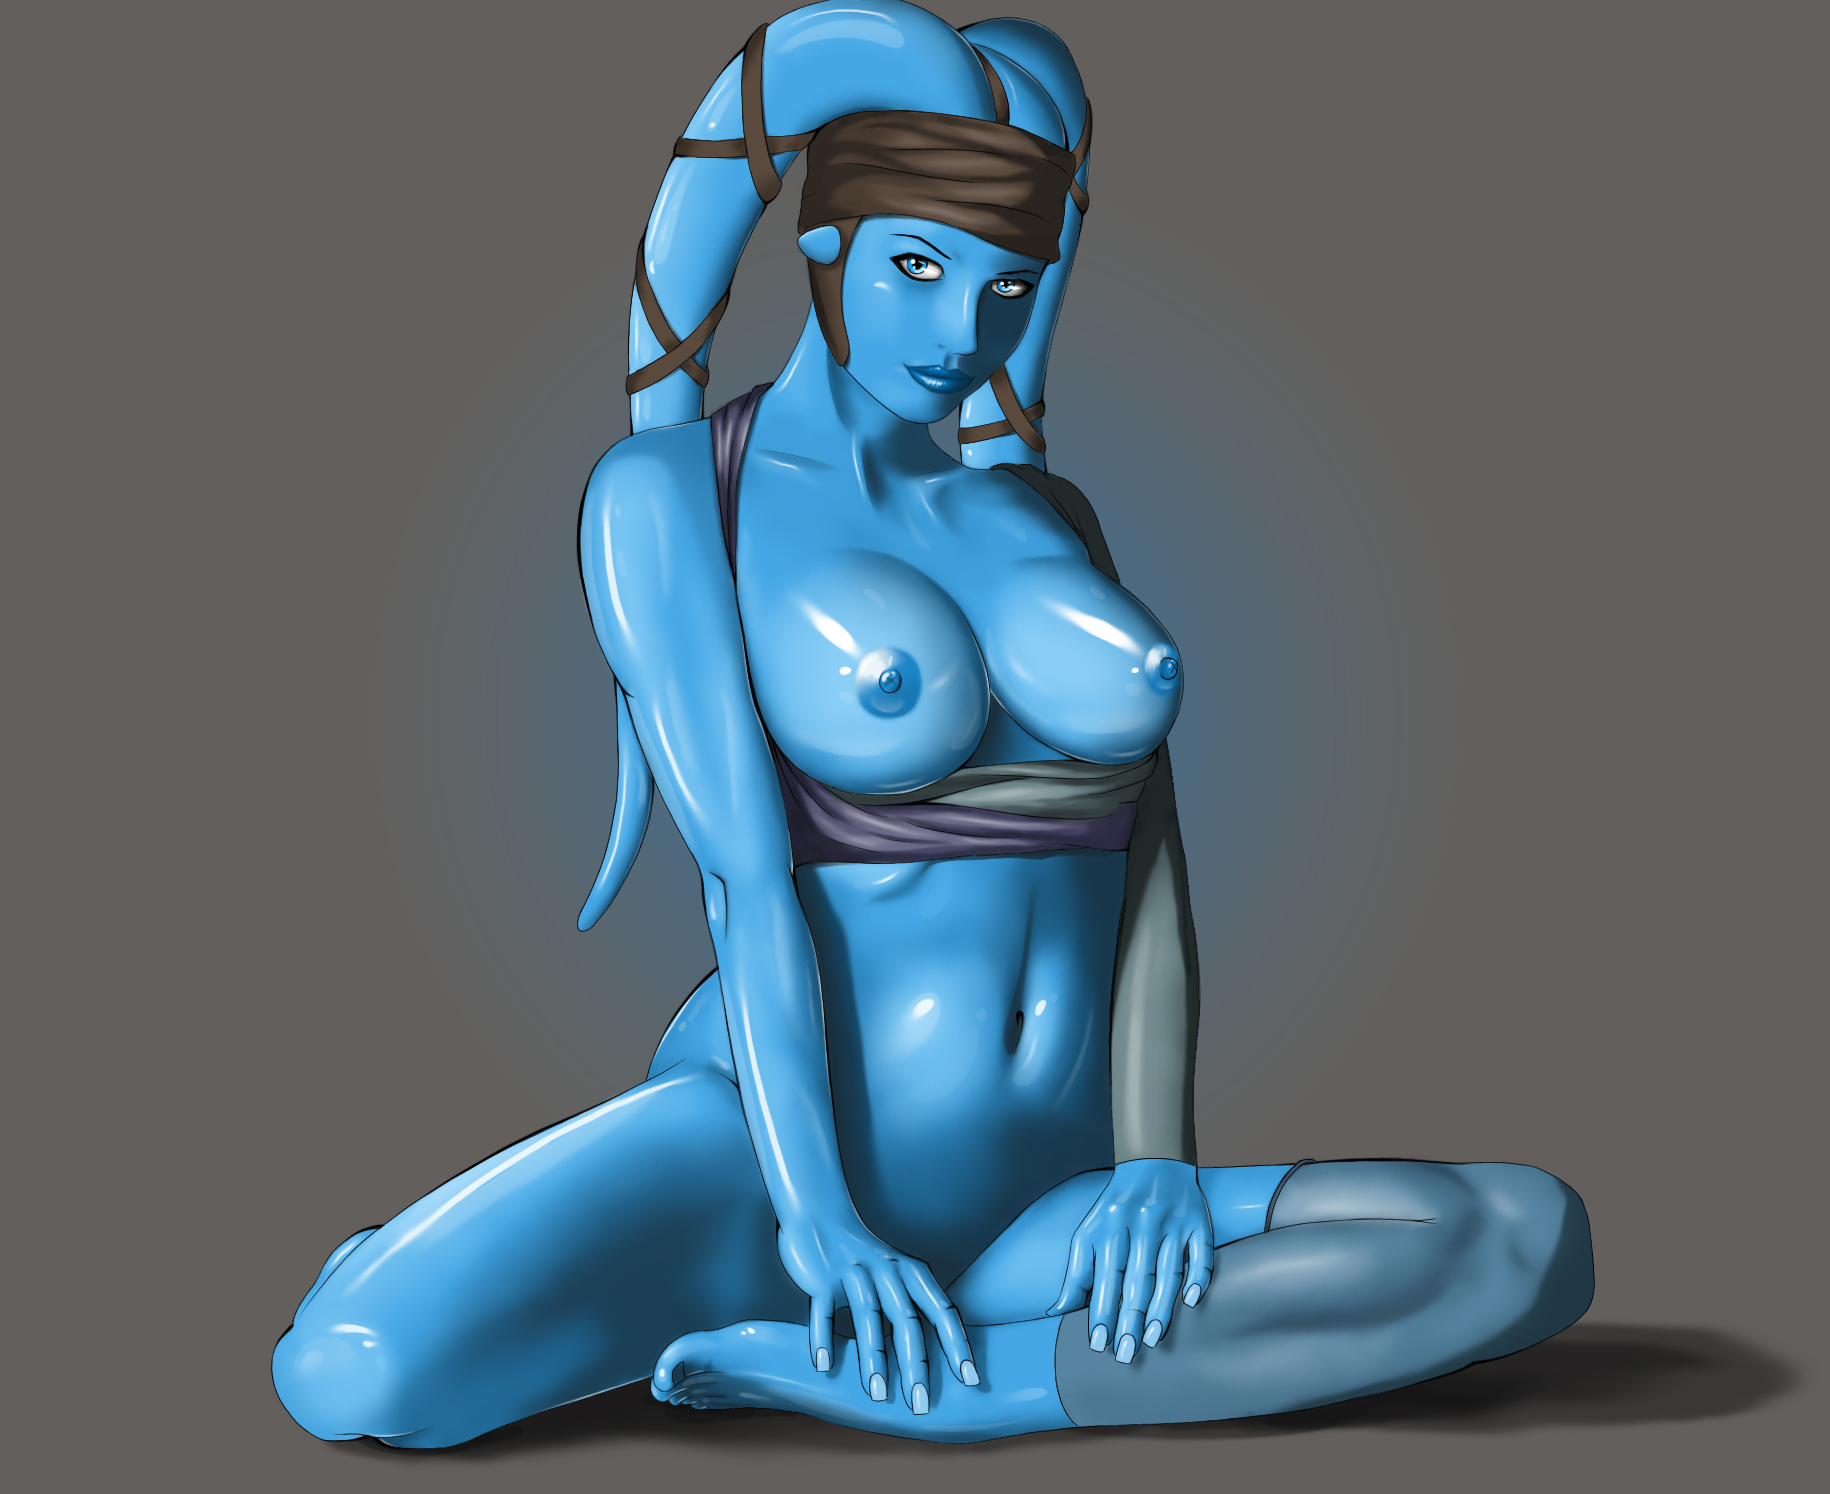 Have missed aayla secura and ahsoka tano sex right